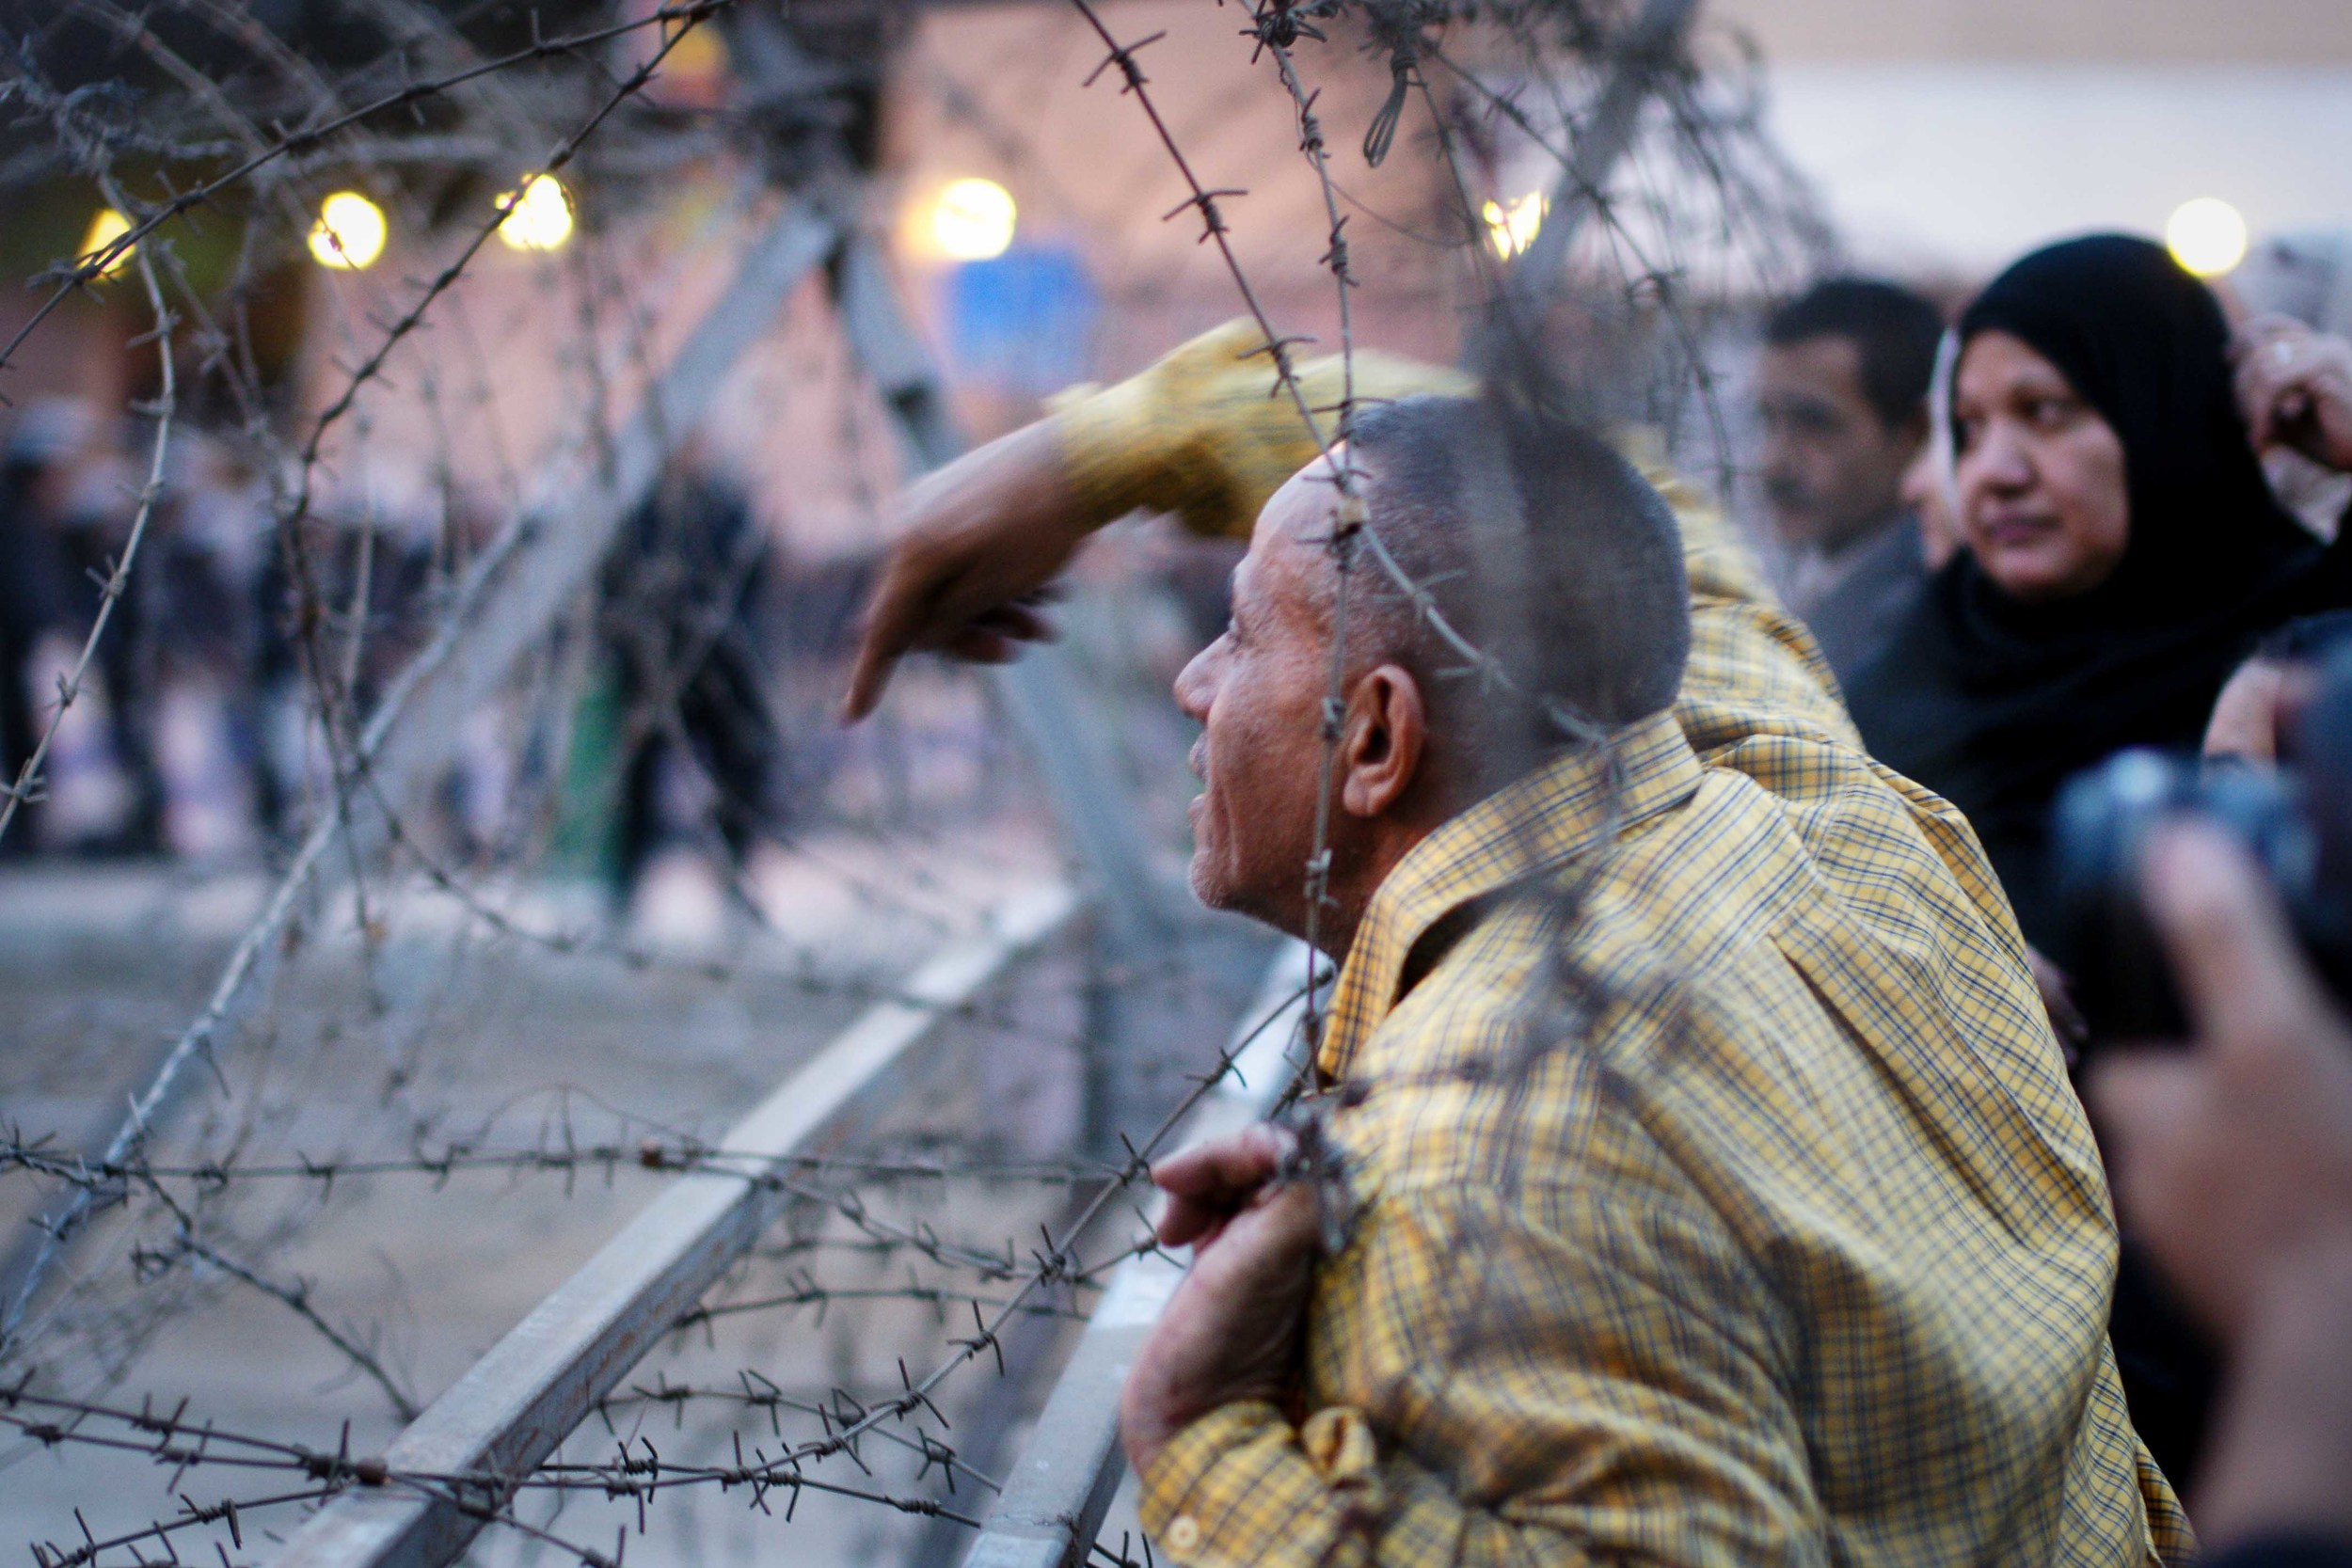 Protestors used the barbed wire as a 'Speaker's Corner' pulpit against the police, and the officers received a tirade of insults.